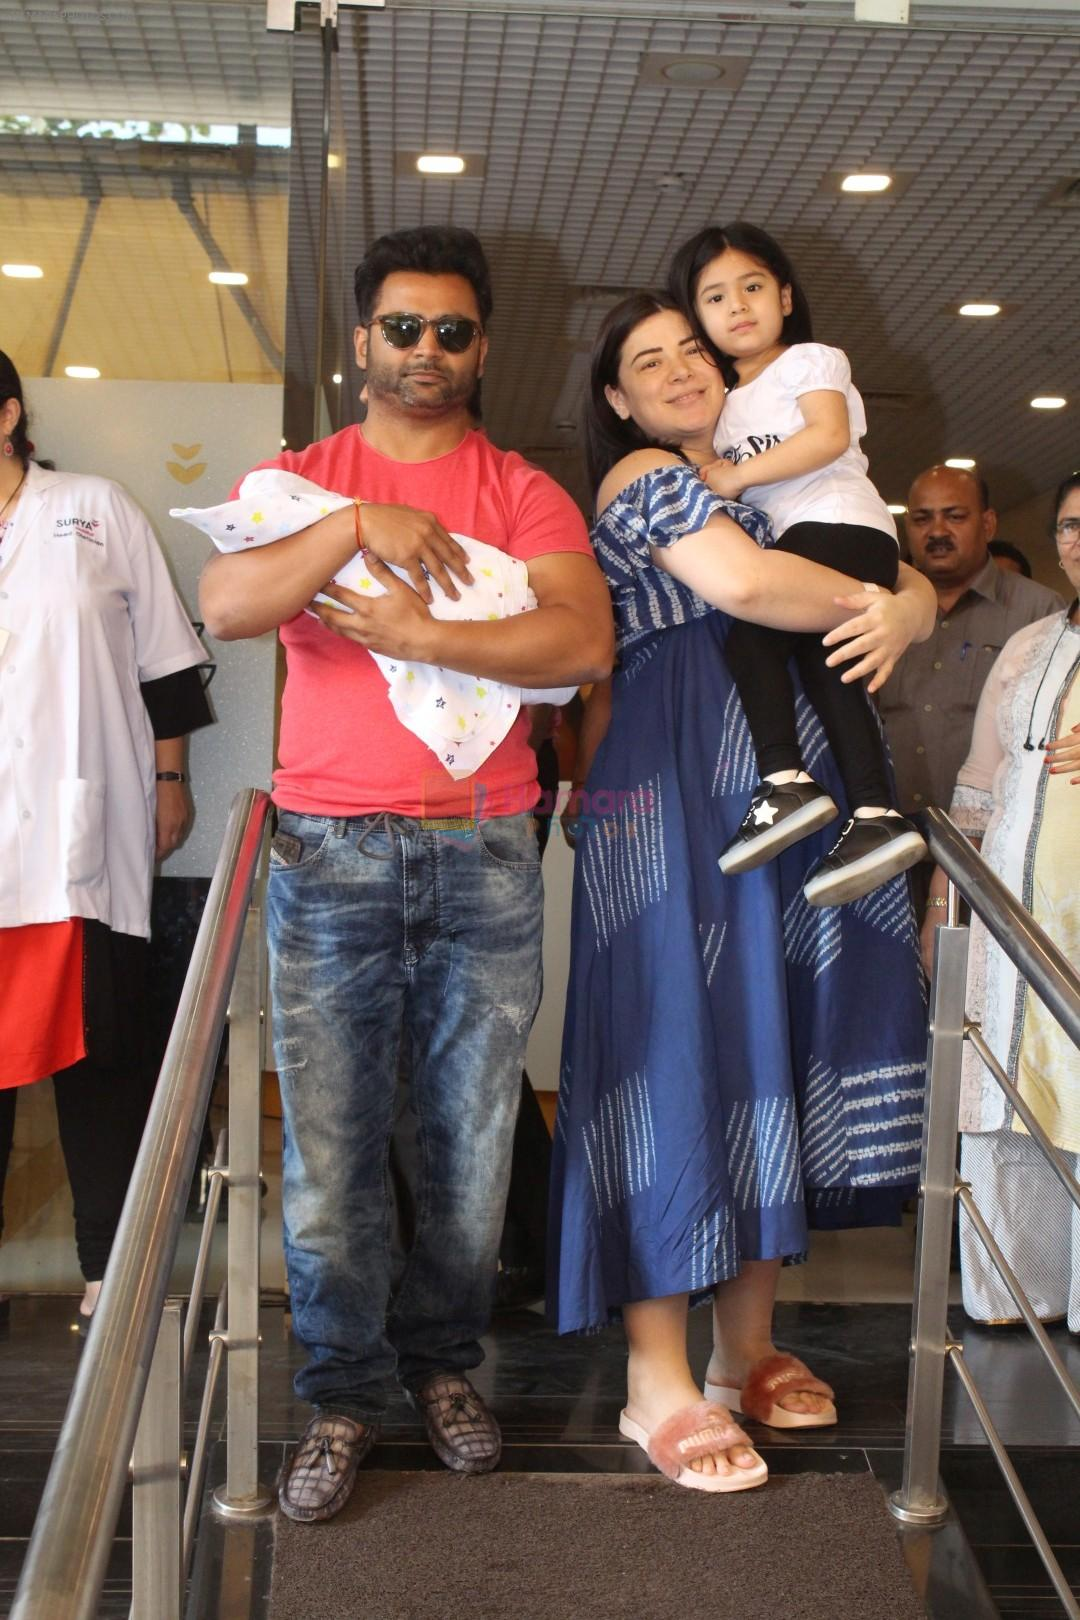 Sachiin J Joshi & His Wife Urvashi Sharma Blessed With A Baby Boy on 30th Nov 2017